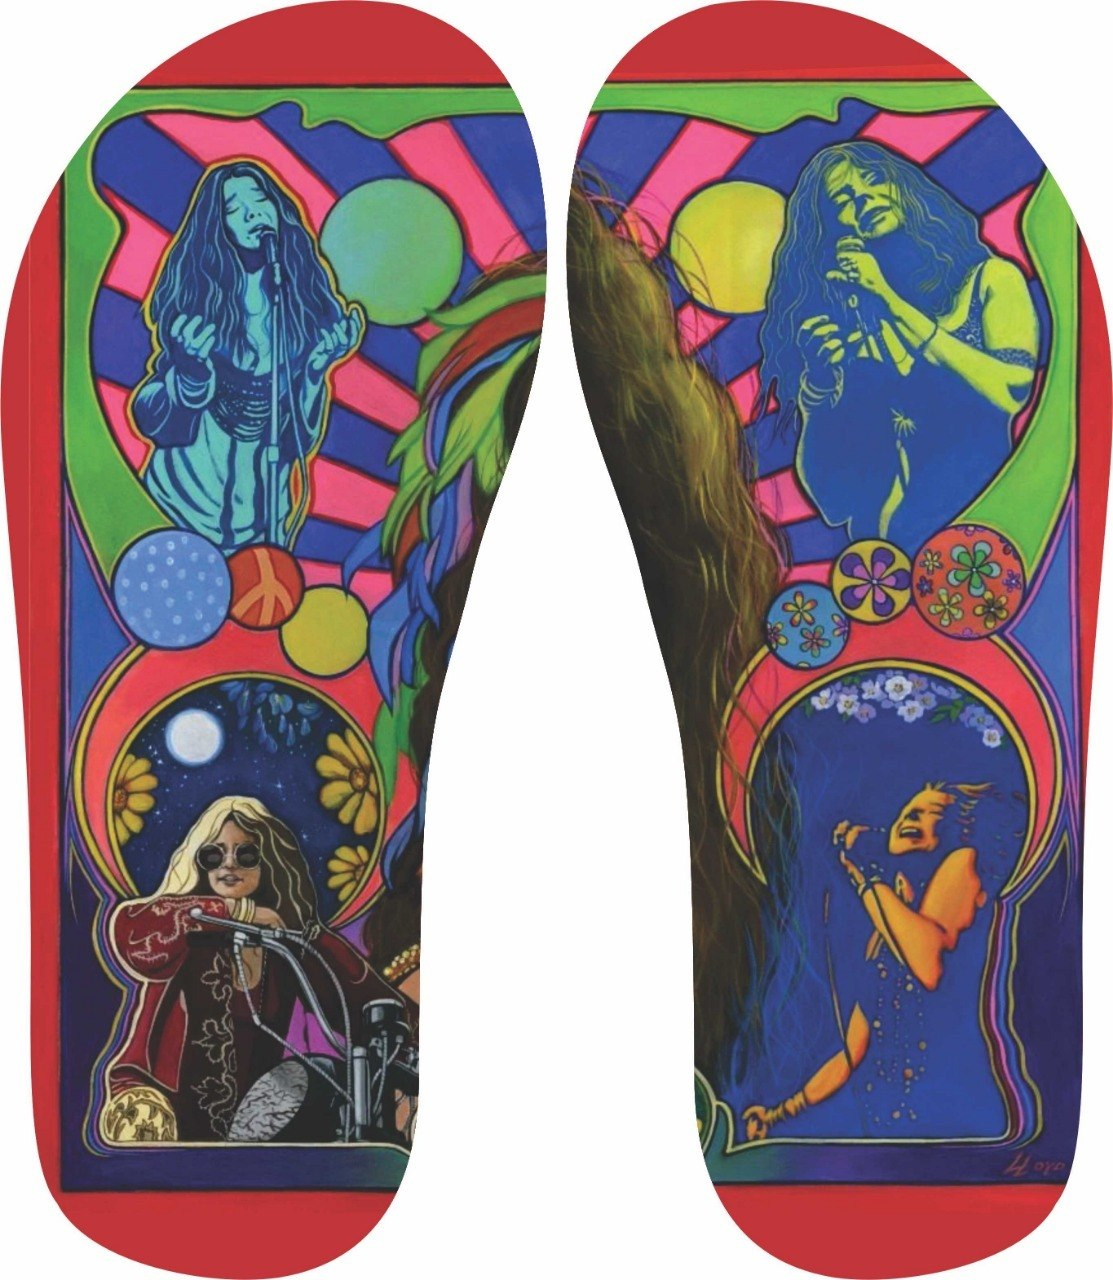 Chinelo Janis Joplin - Asterion Chinelos Personalizados